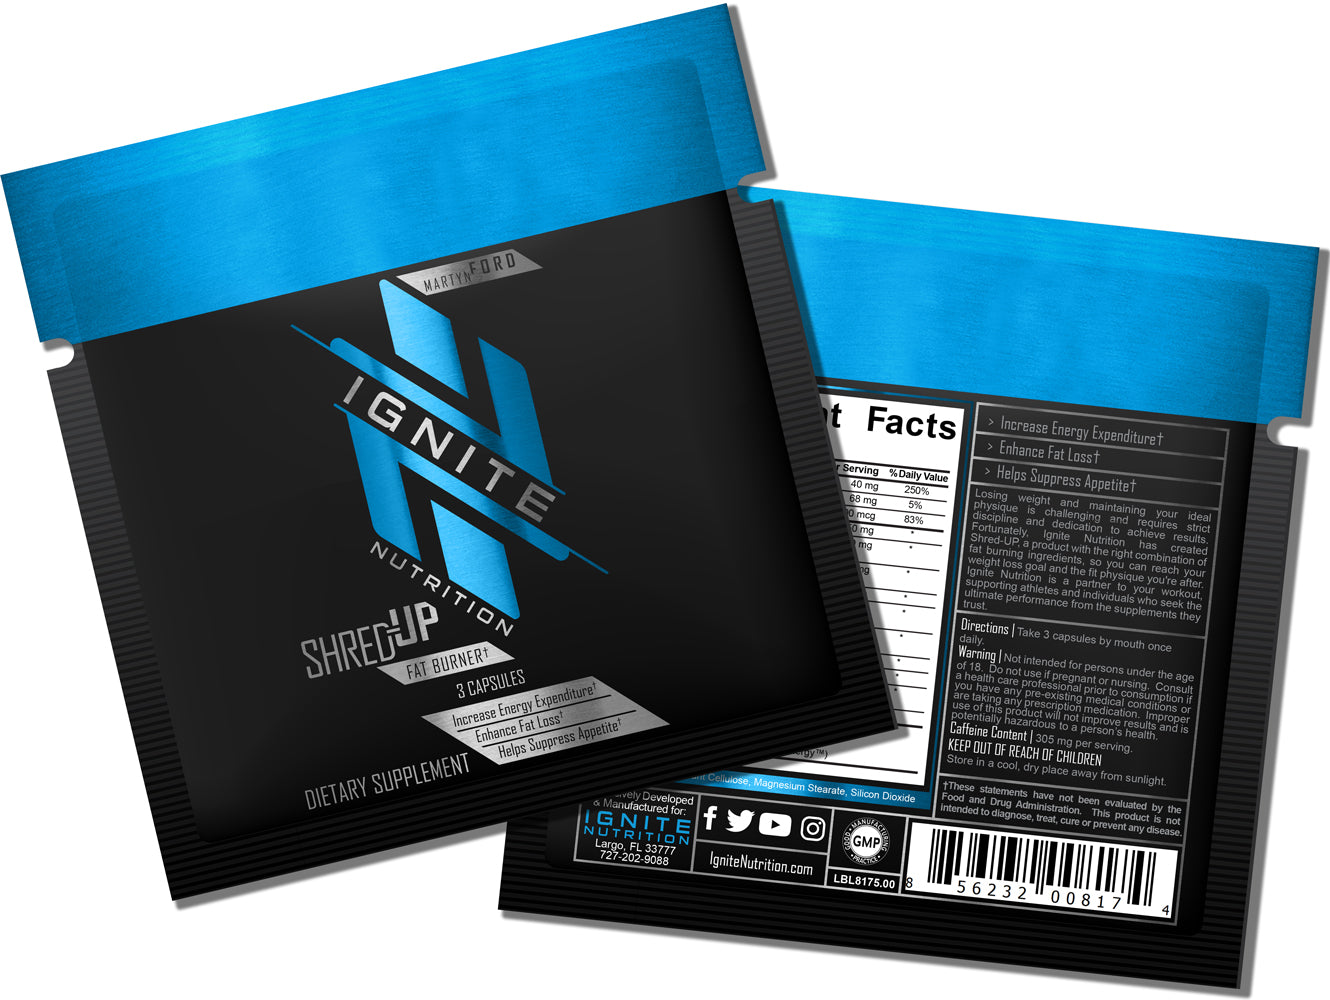 Shred-Up Fat Burner (Sample) - Ignite Nutrition